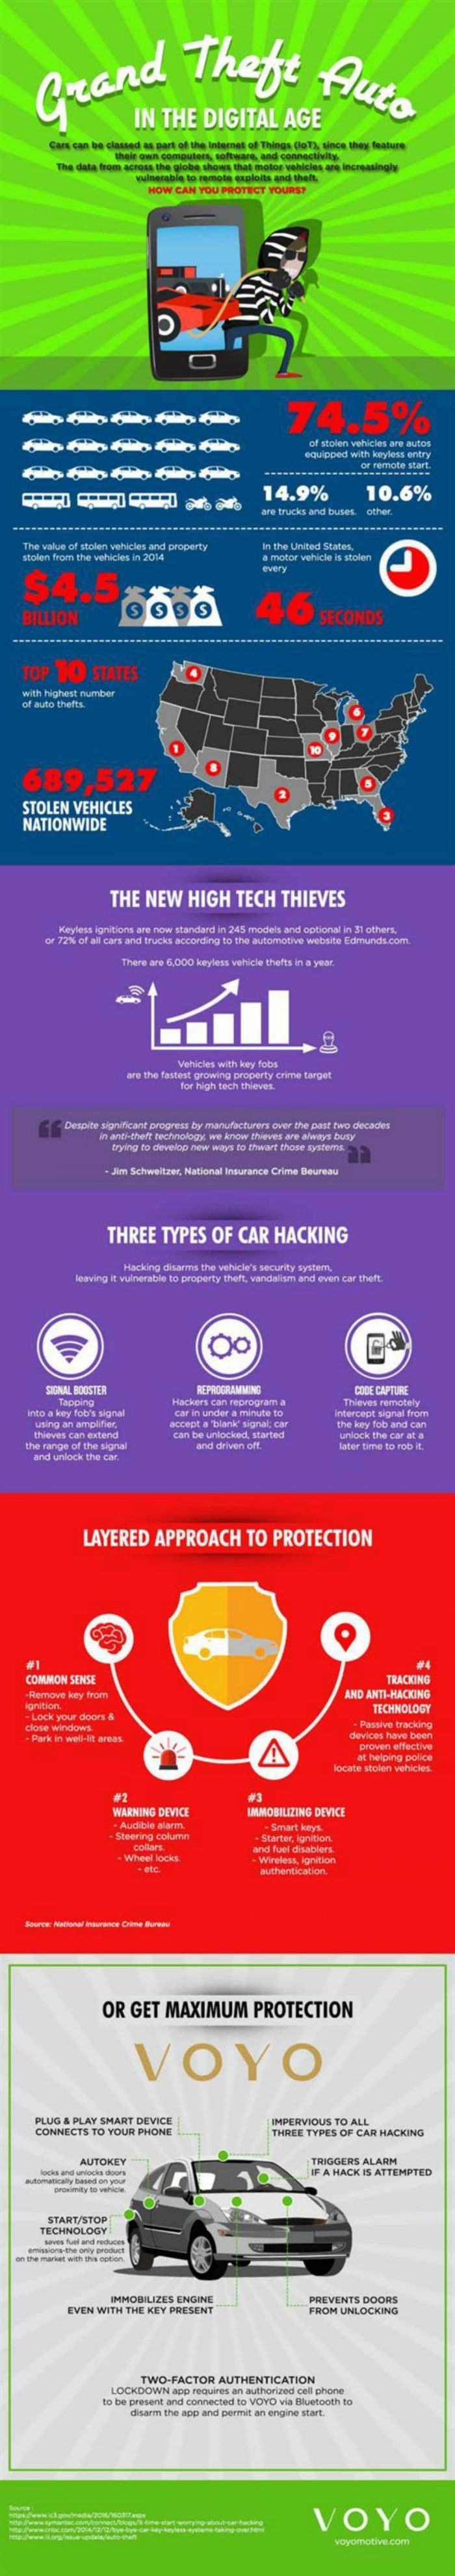 New App Helps Prevent Car Hacking & Theft